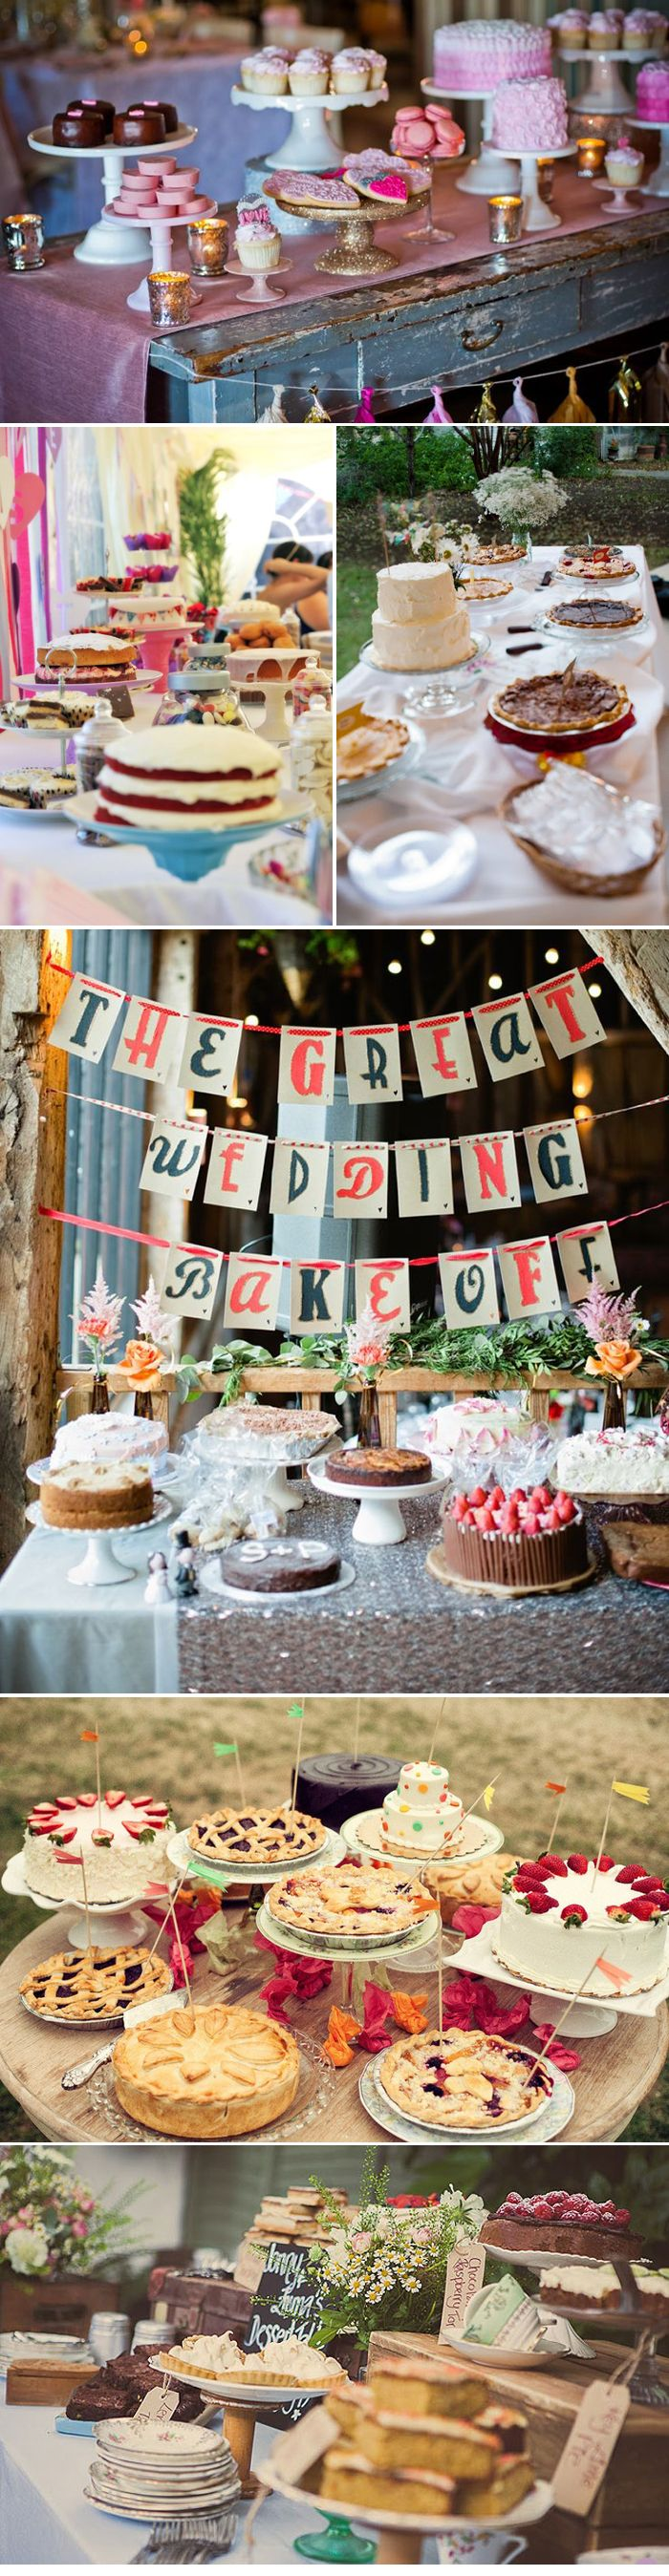 "Love this idea!!! - Instead of a big formal expensive cake - invite guests to take part in the 'Great Wedding Bake Off""!! You get loads of variety and it adds a little fun to the wedding night and desert time!! :) Great Irish Bake Off Inspired Cake Tables"